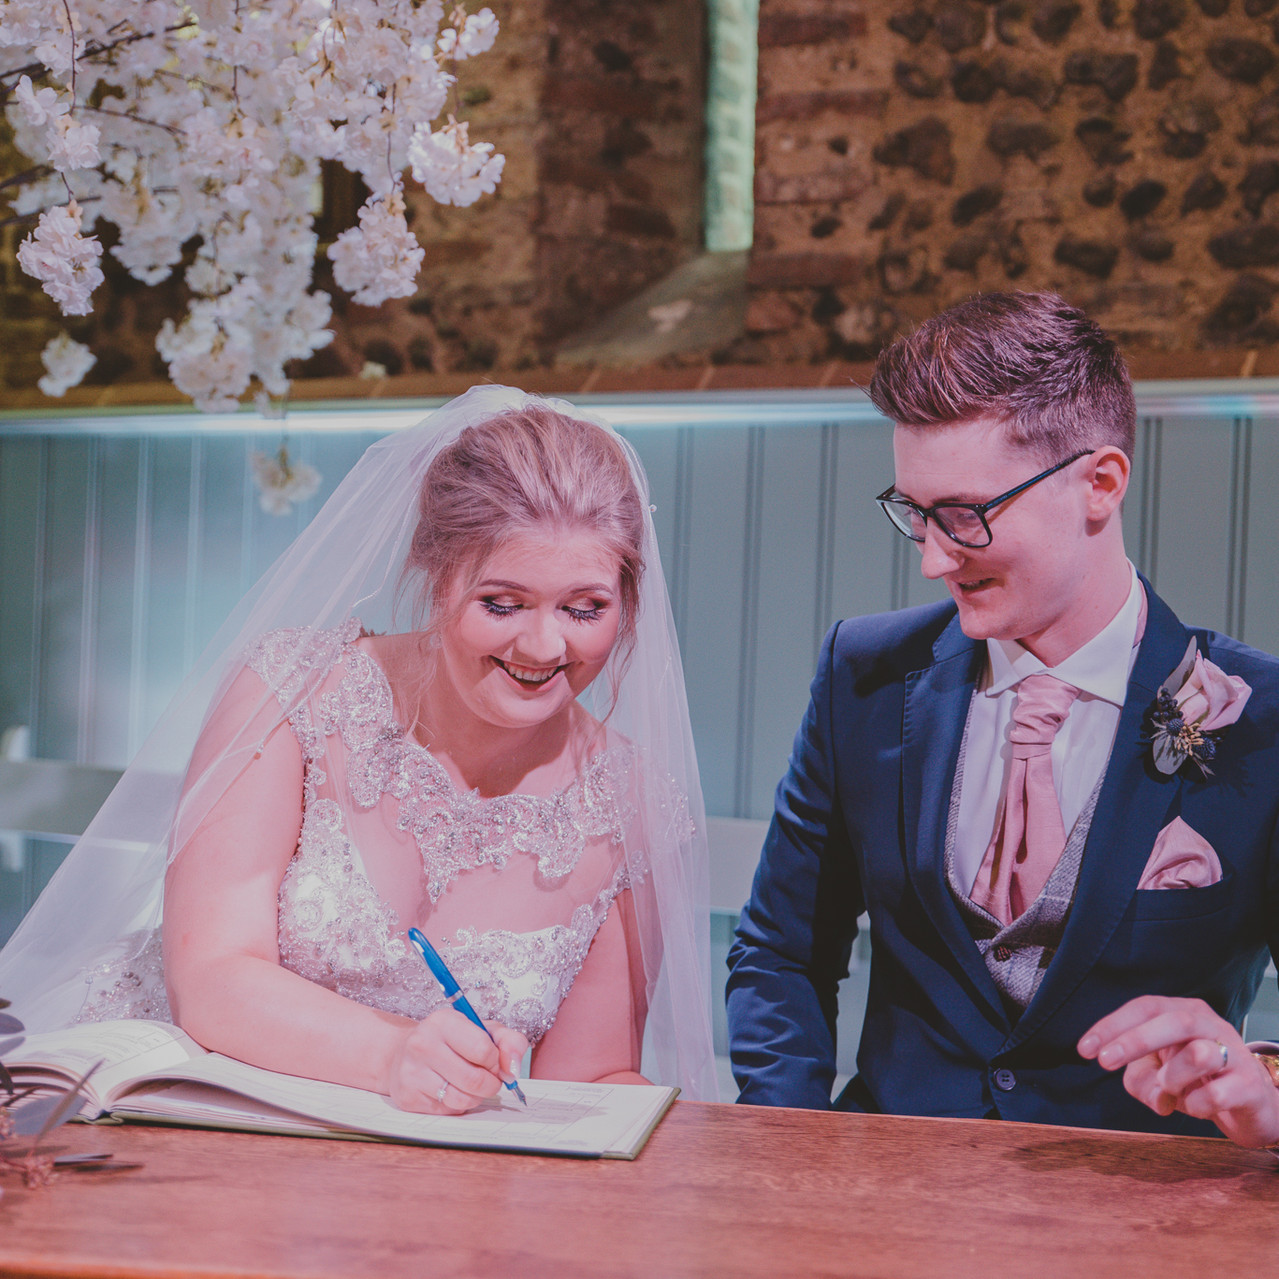 Fay Wedding - Thursford Collection at the Garden Pavilion, Norfolk. Signing